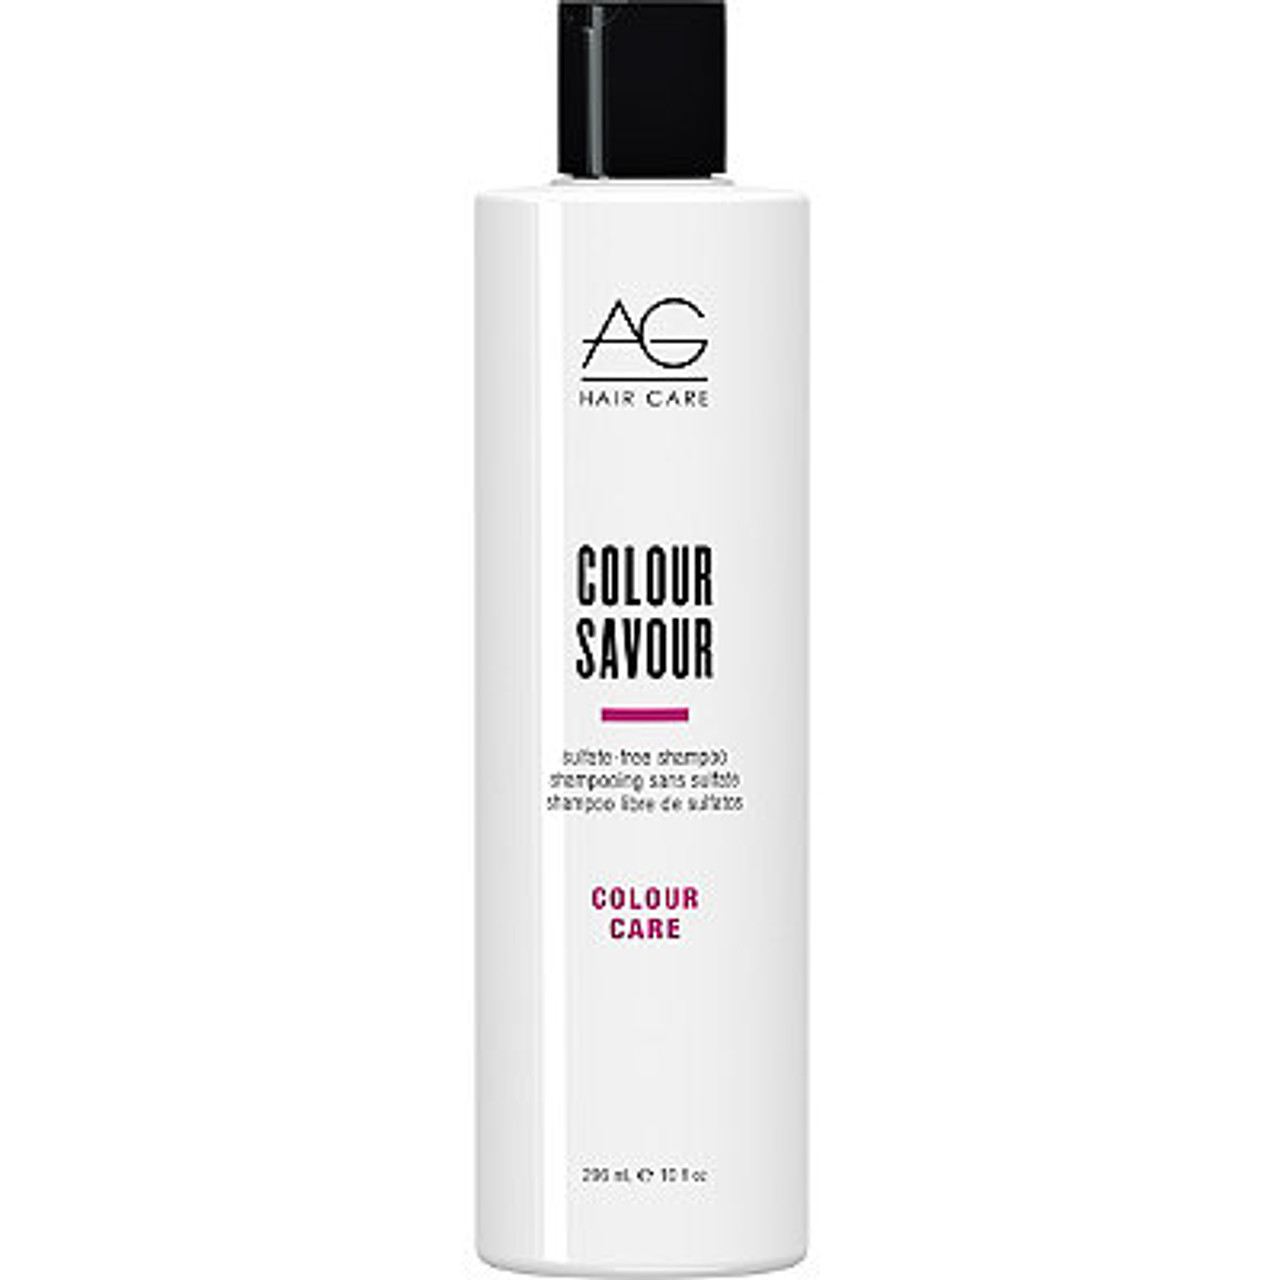 AG Hair Colour Savour Shampoo, 10 oz